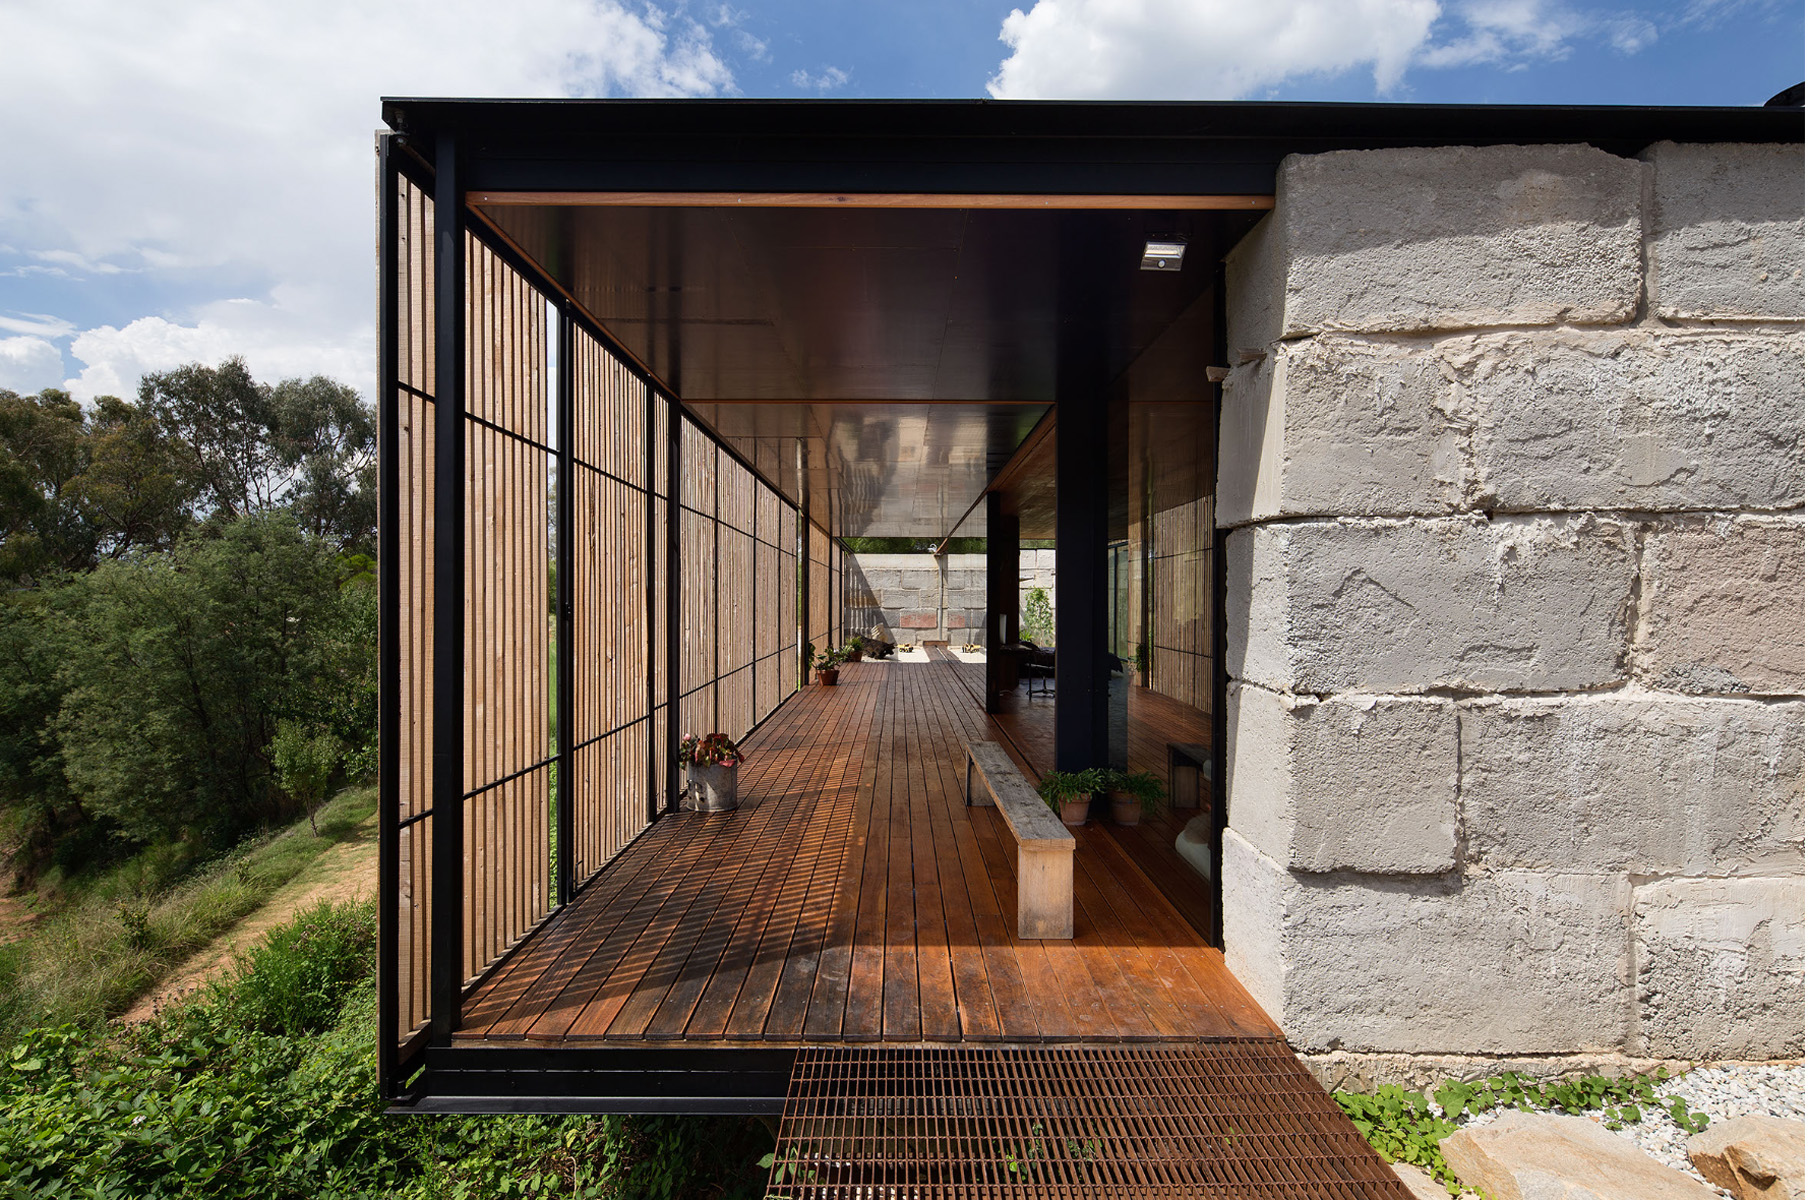 2015 victorian architecture award winners green for Award winning house plans 2015